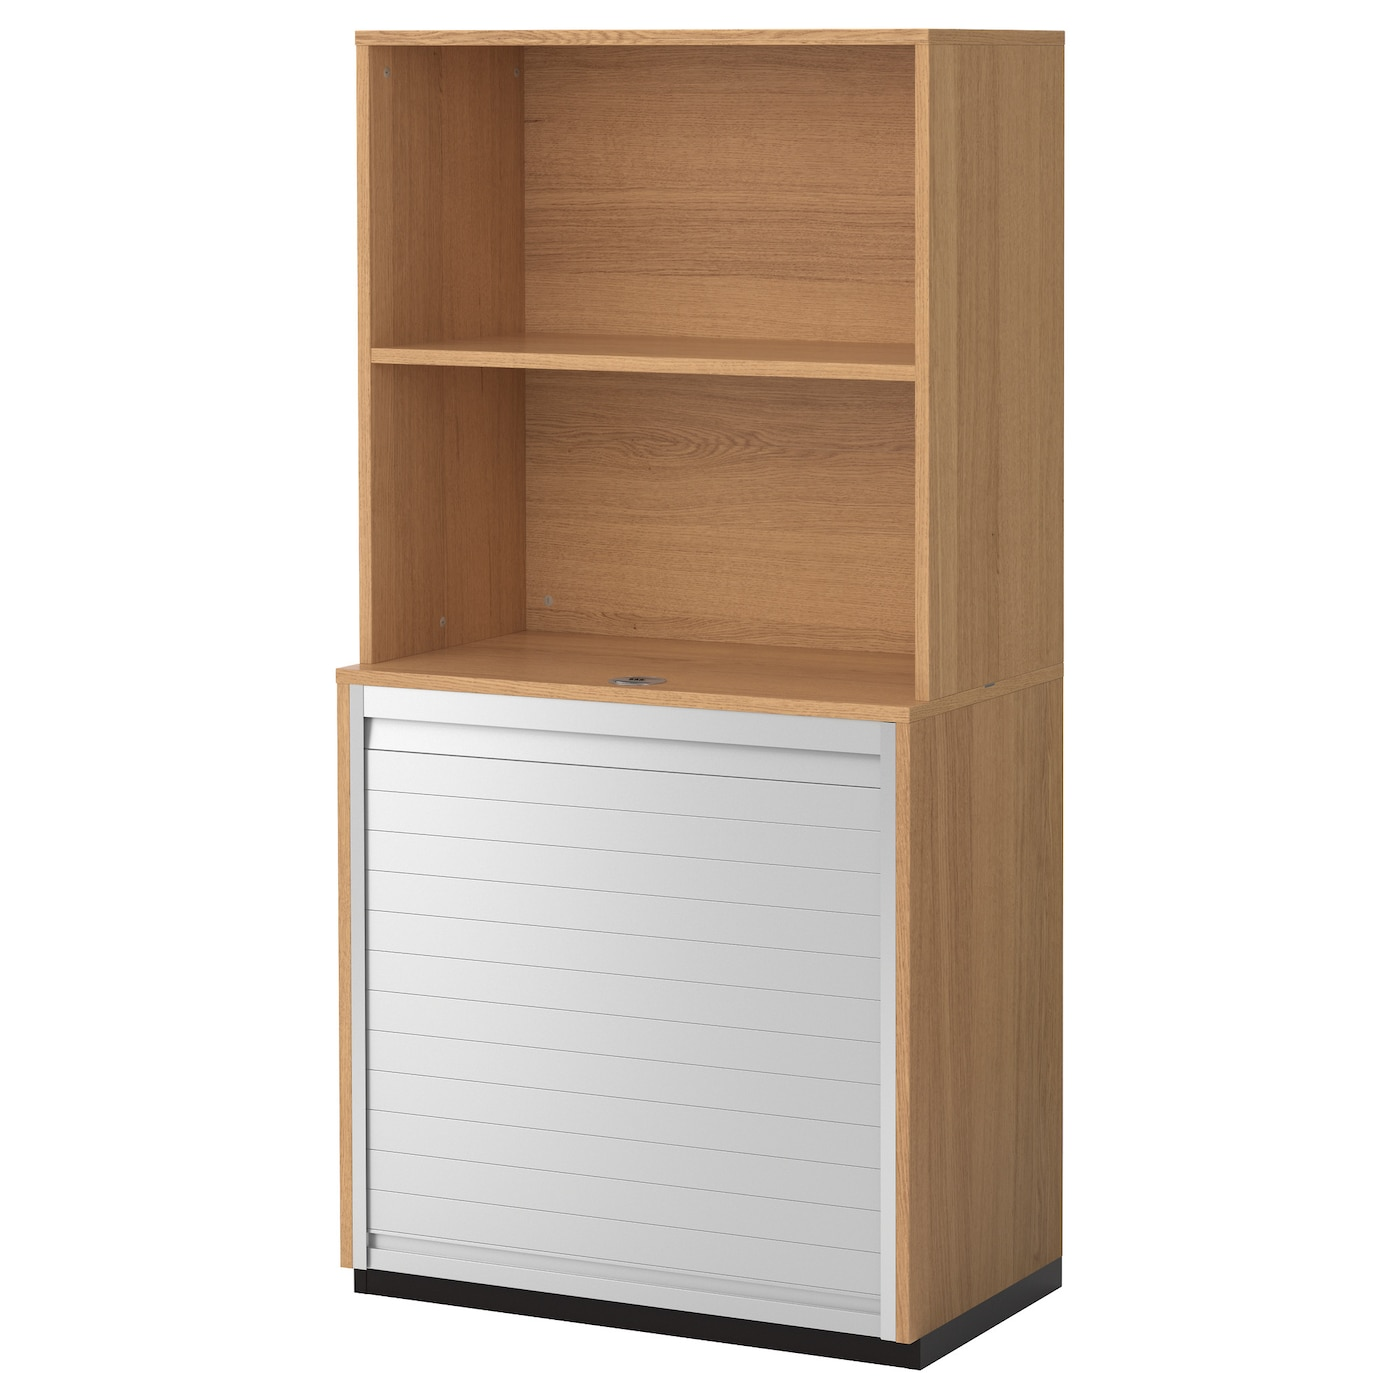 IKEA GALANT storage combination with roll-front